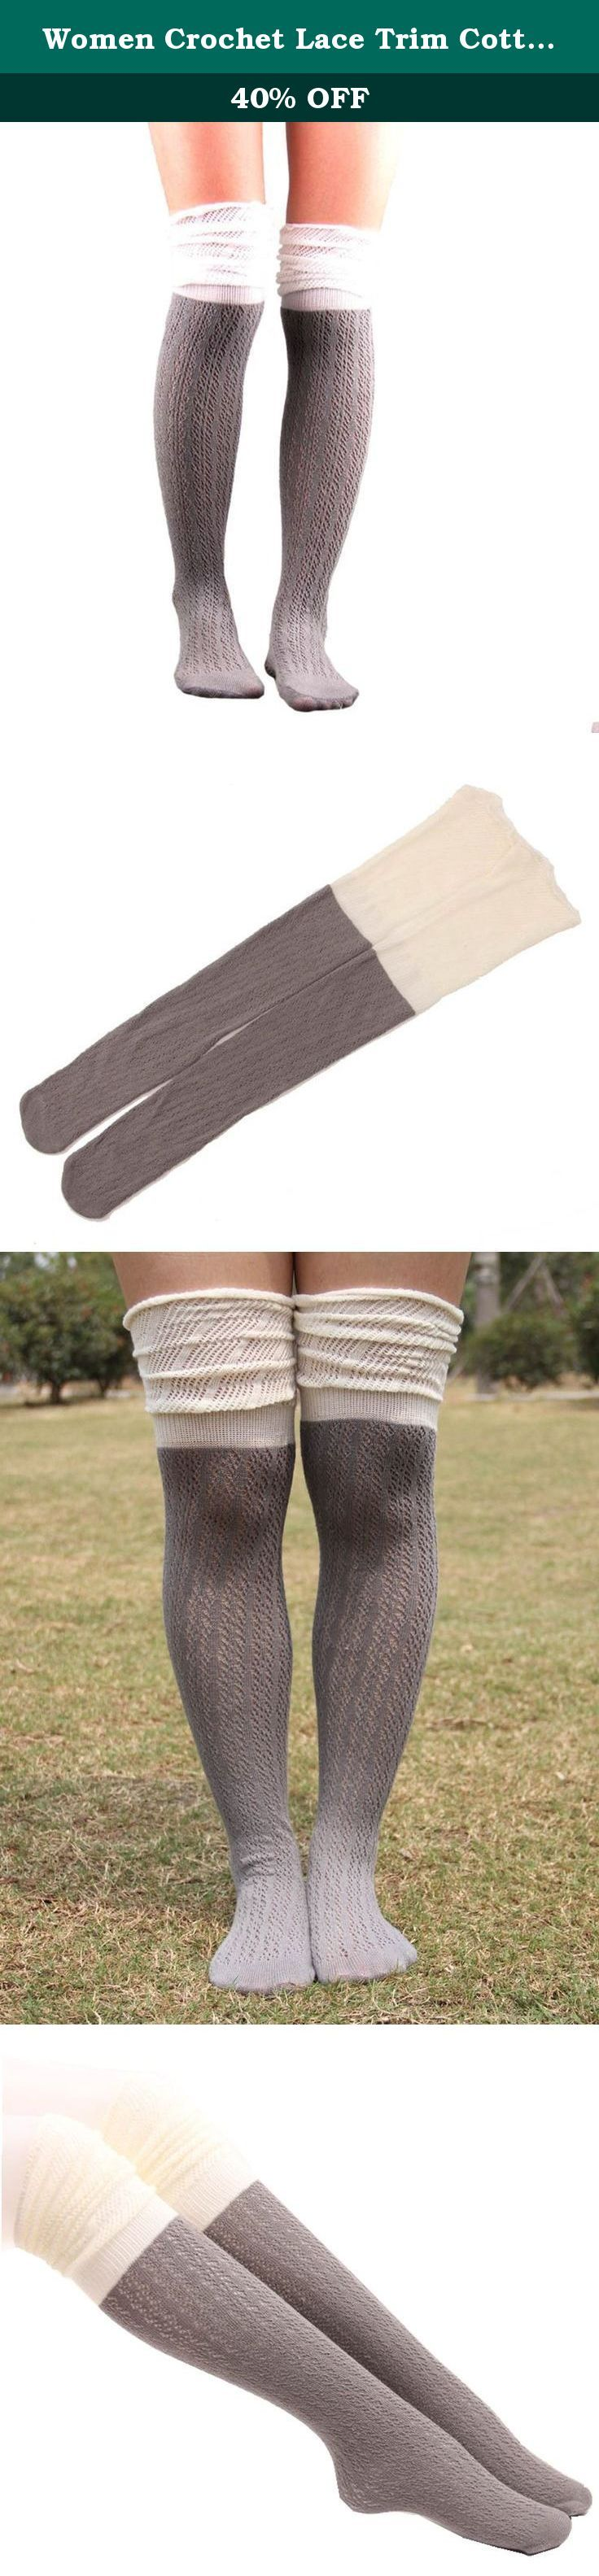 Women Crochet Lace Trim Cotton Knit Leg Warmers Boot Knee High Stocking (Grey&White). Package Content: 1Pair Women Crochet Lace Trim Cotton Knit Footed Leg Boot Knee High Stocking Give your legs a flattering layered look with these darling boot socks! Topped with lace,these socks add depth and feminine flair to your outfit. These socks are thick enough to feel comfortable without adding bulk. A must-have for any boot lover!.